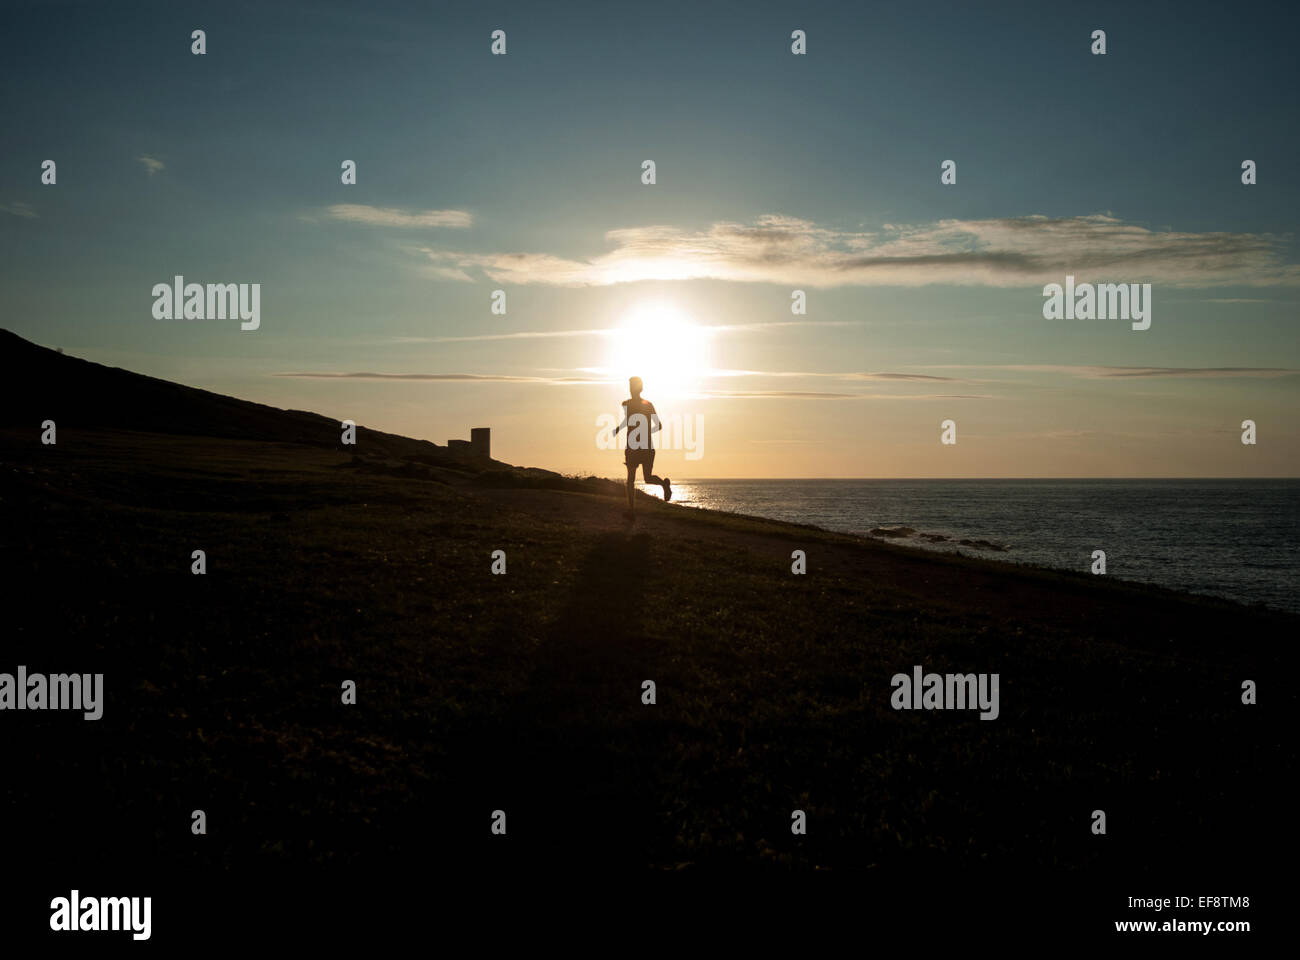 Silhouette of man running on beach at sunset, Galicia, Spain - Stock Image